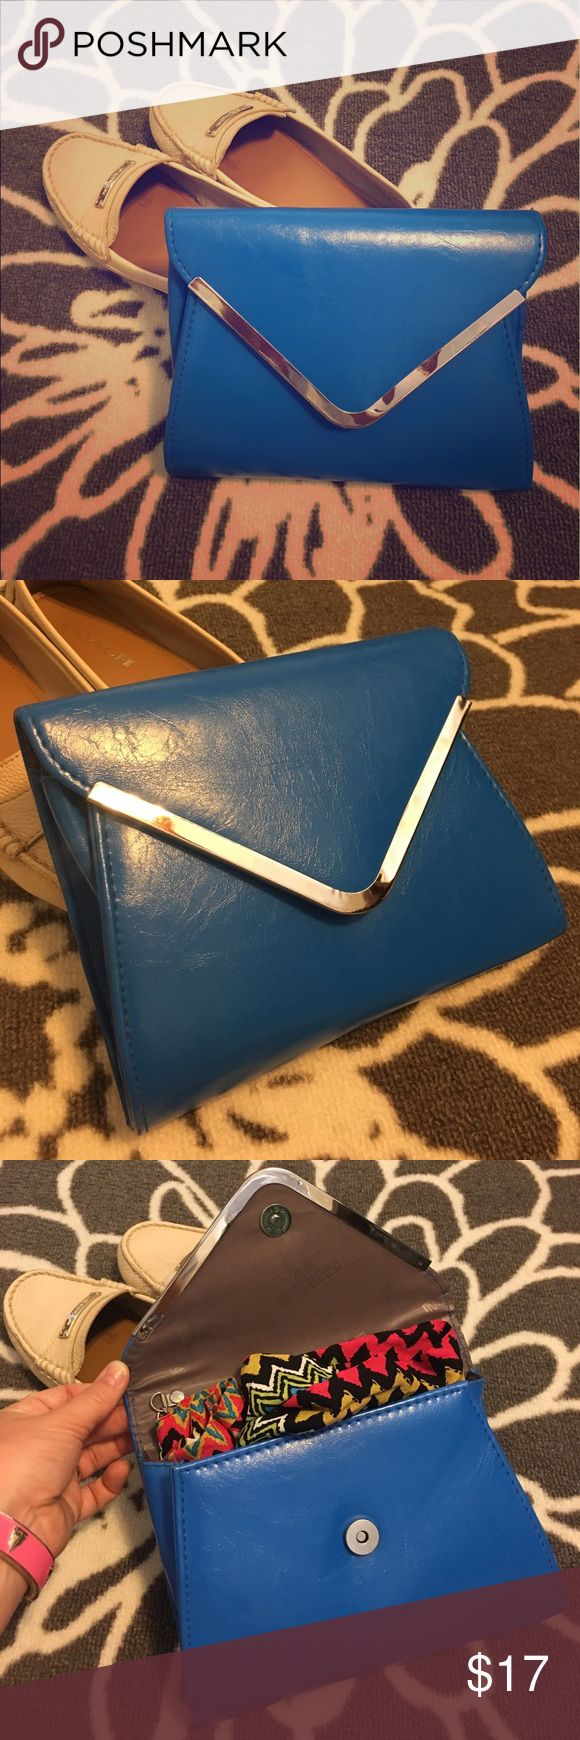 Cobalt Blue Envelope Clutch This striking blue envelope clutch easily converts to a cross body bag.  Stylish chrome detailing along the edges makes this a real standout. Bags Clutches & Wristlets